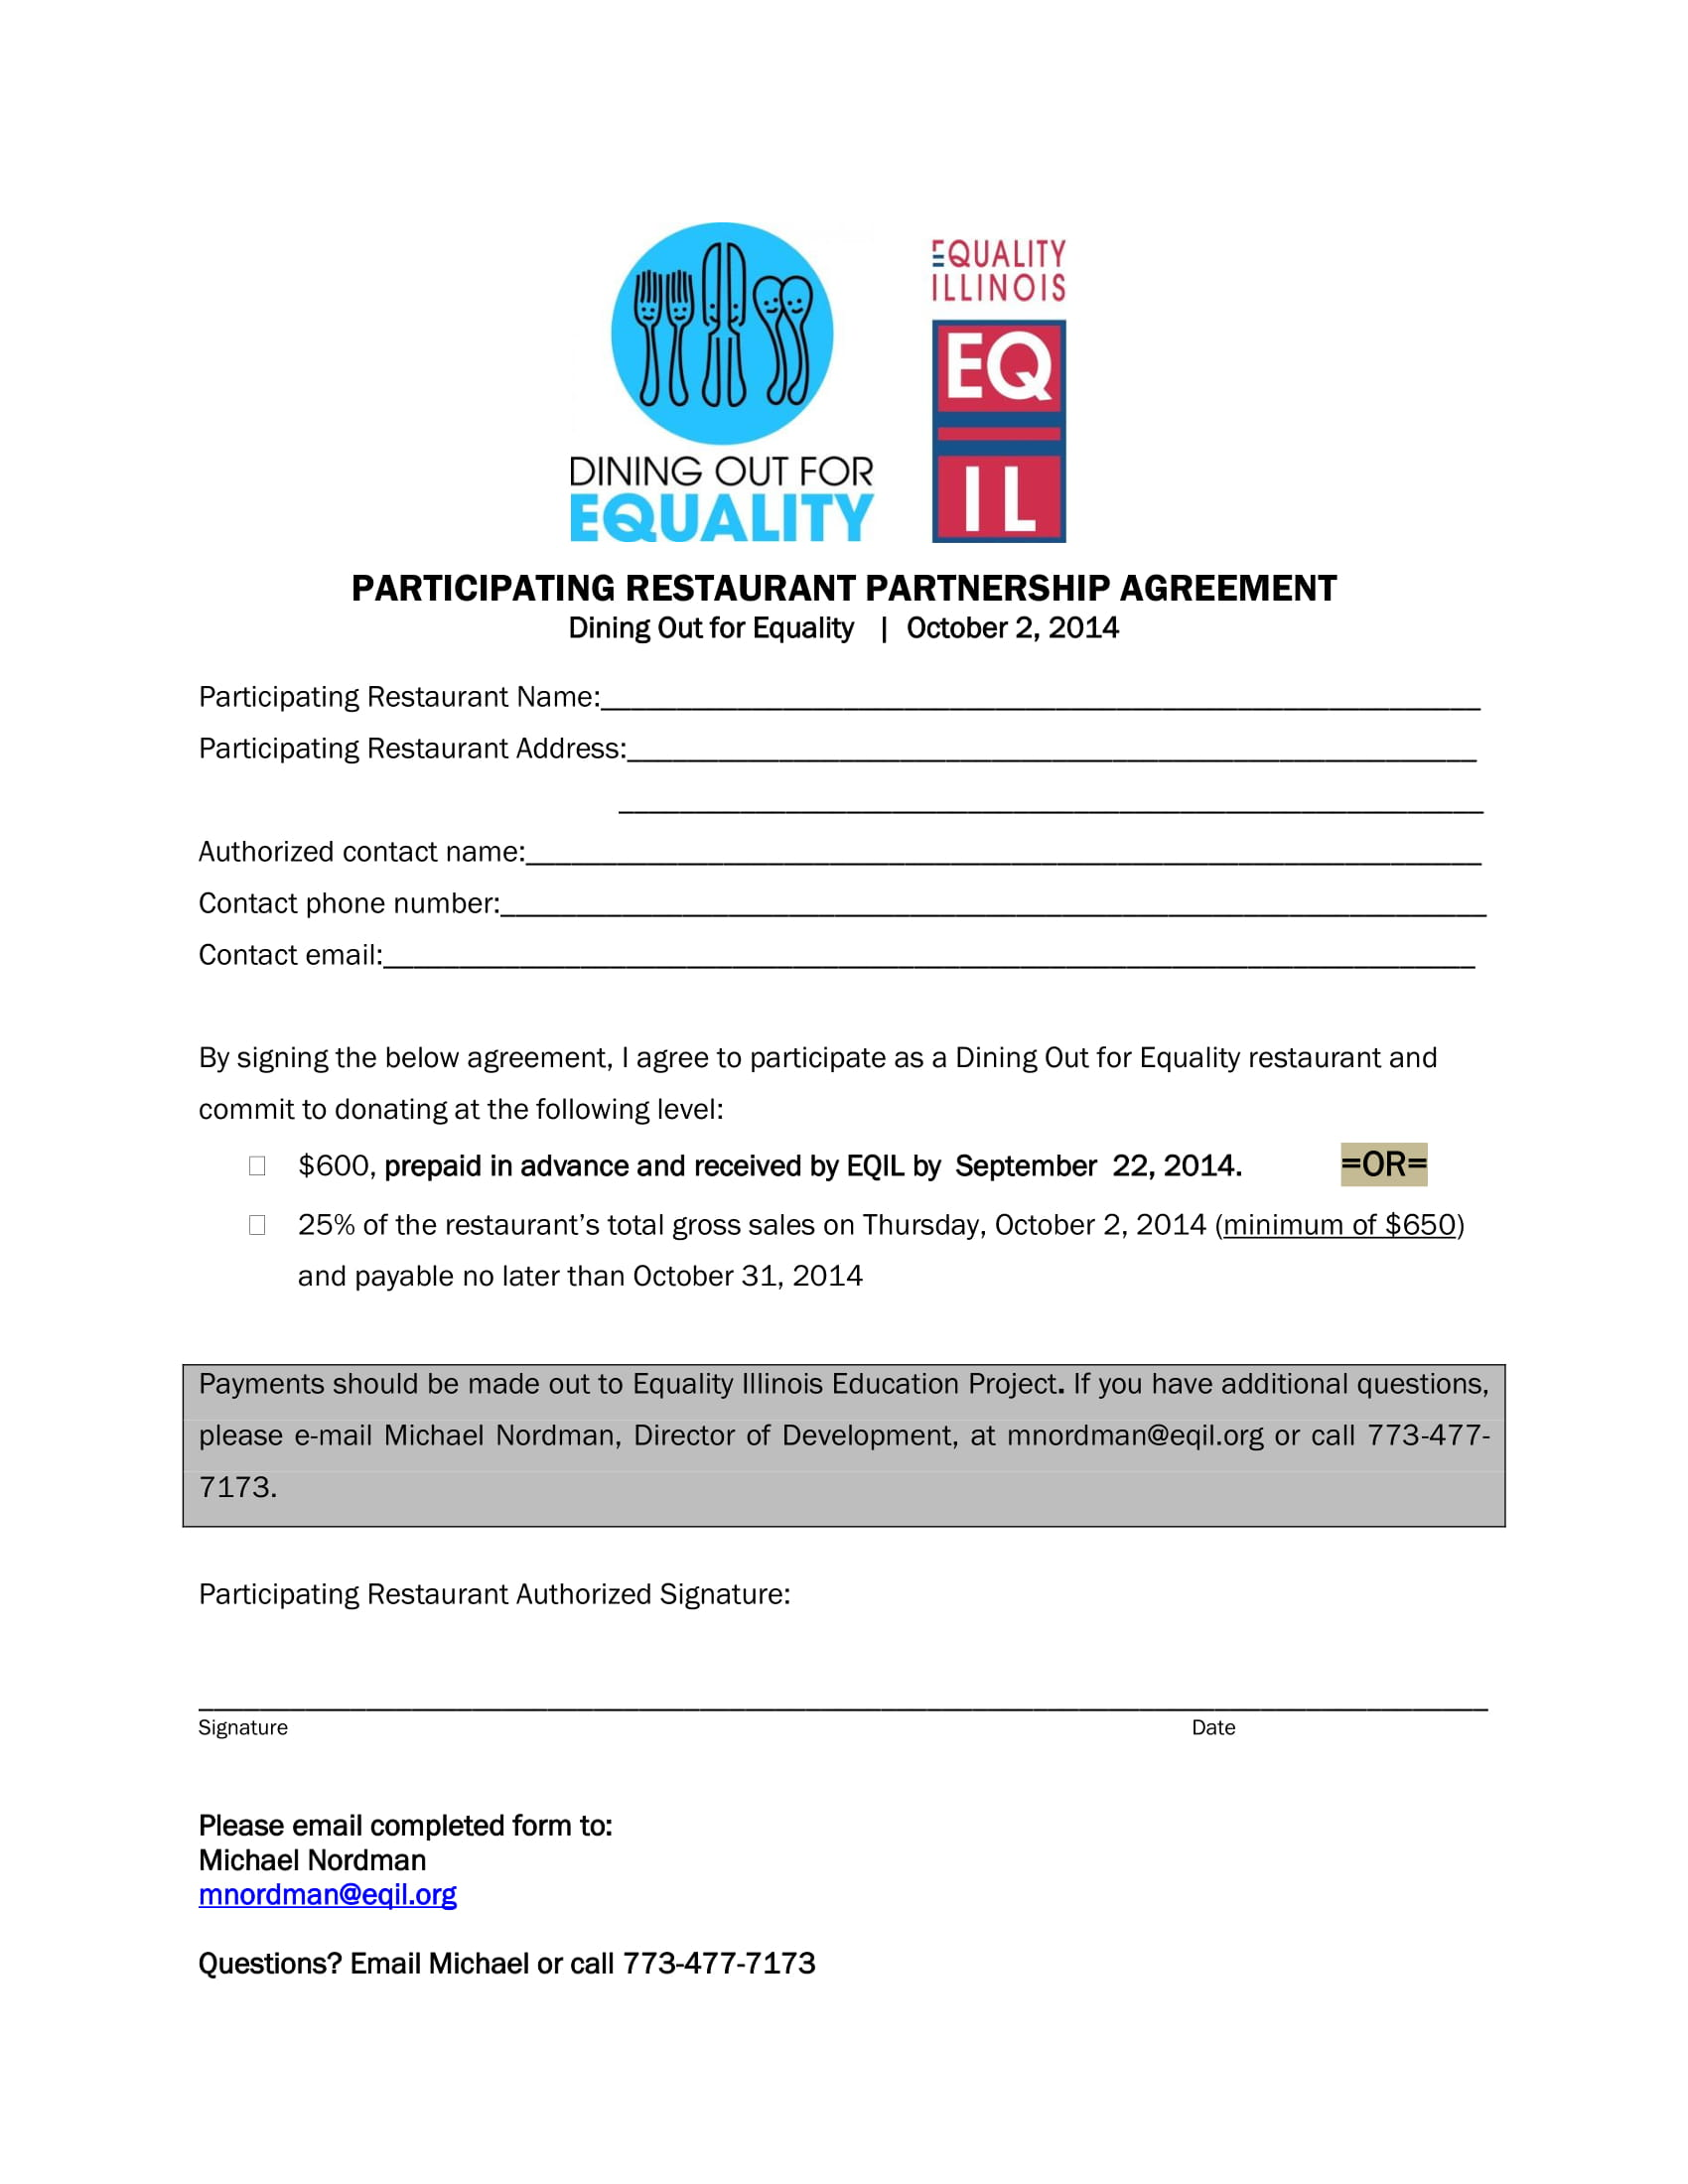 participating restaurant partnership agreement example1